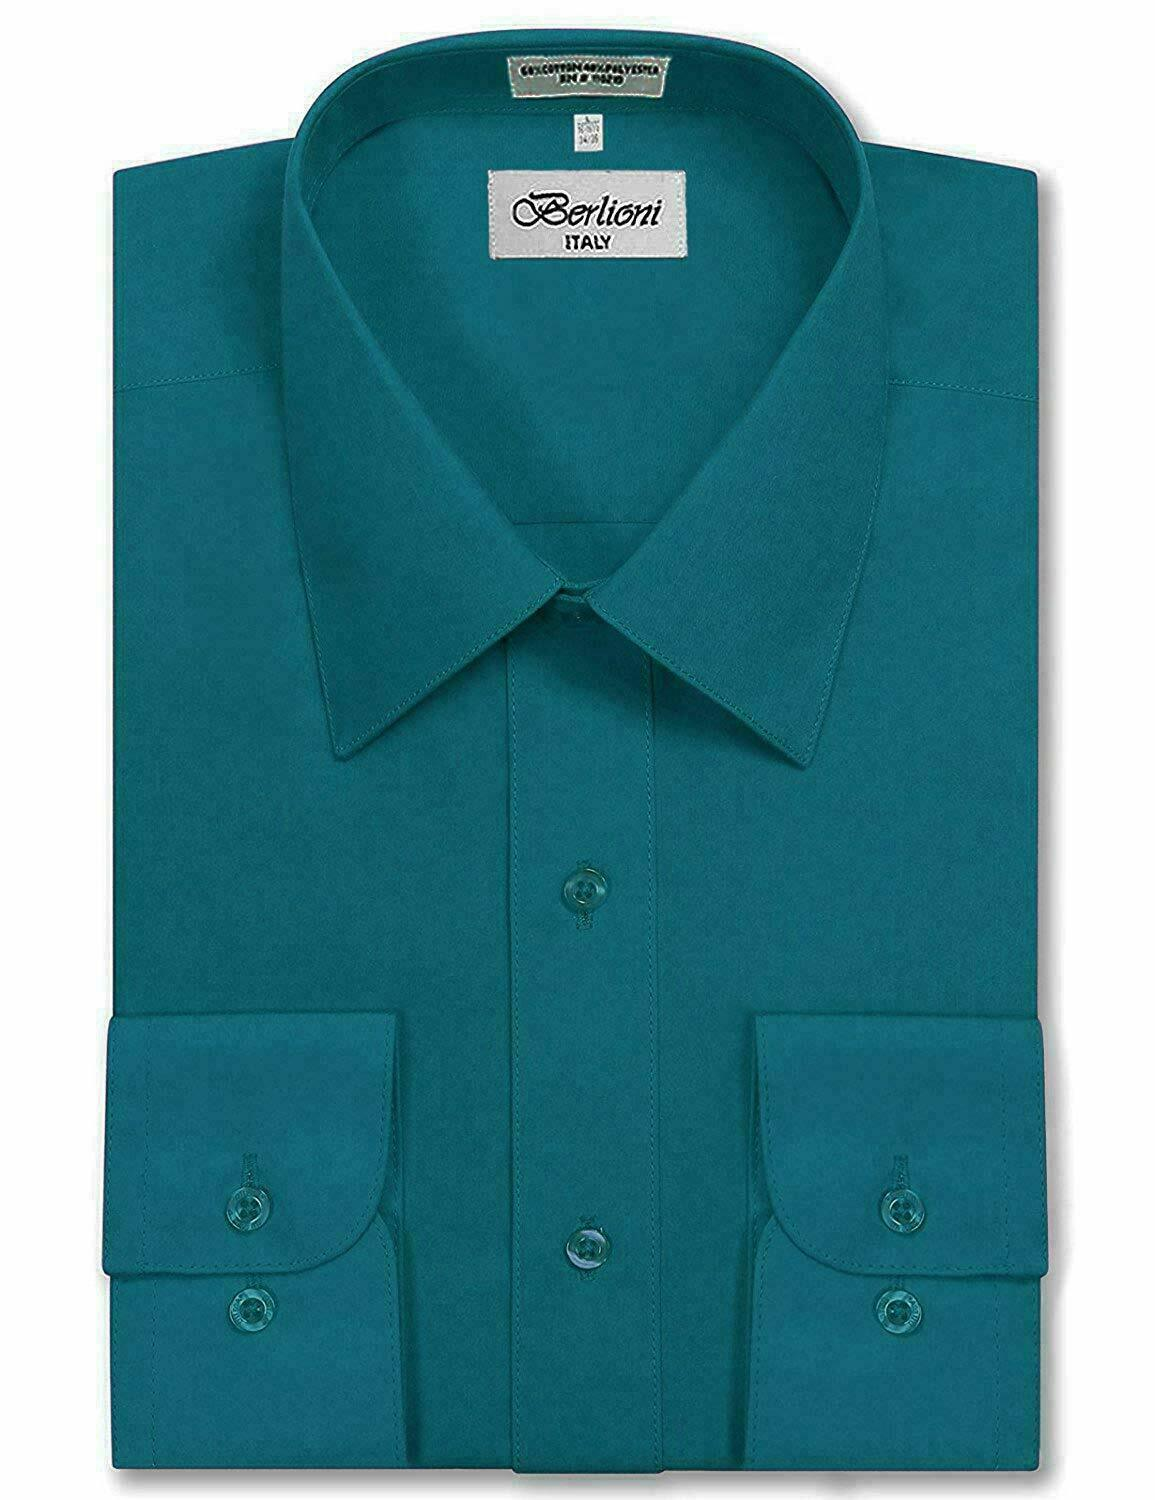 Berlioni Italy Men's Premium Classic French Standard Cuff Teal Dress Shirt - L